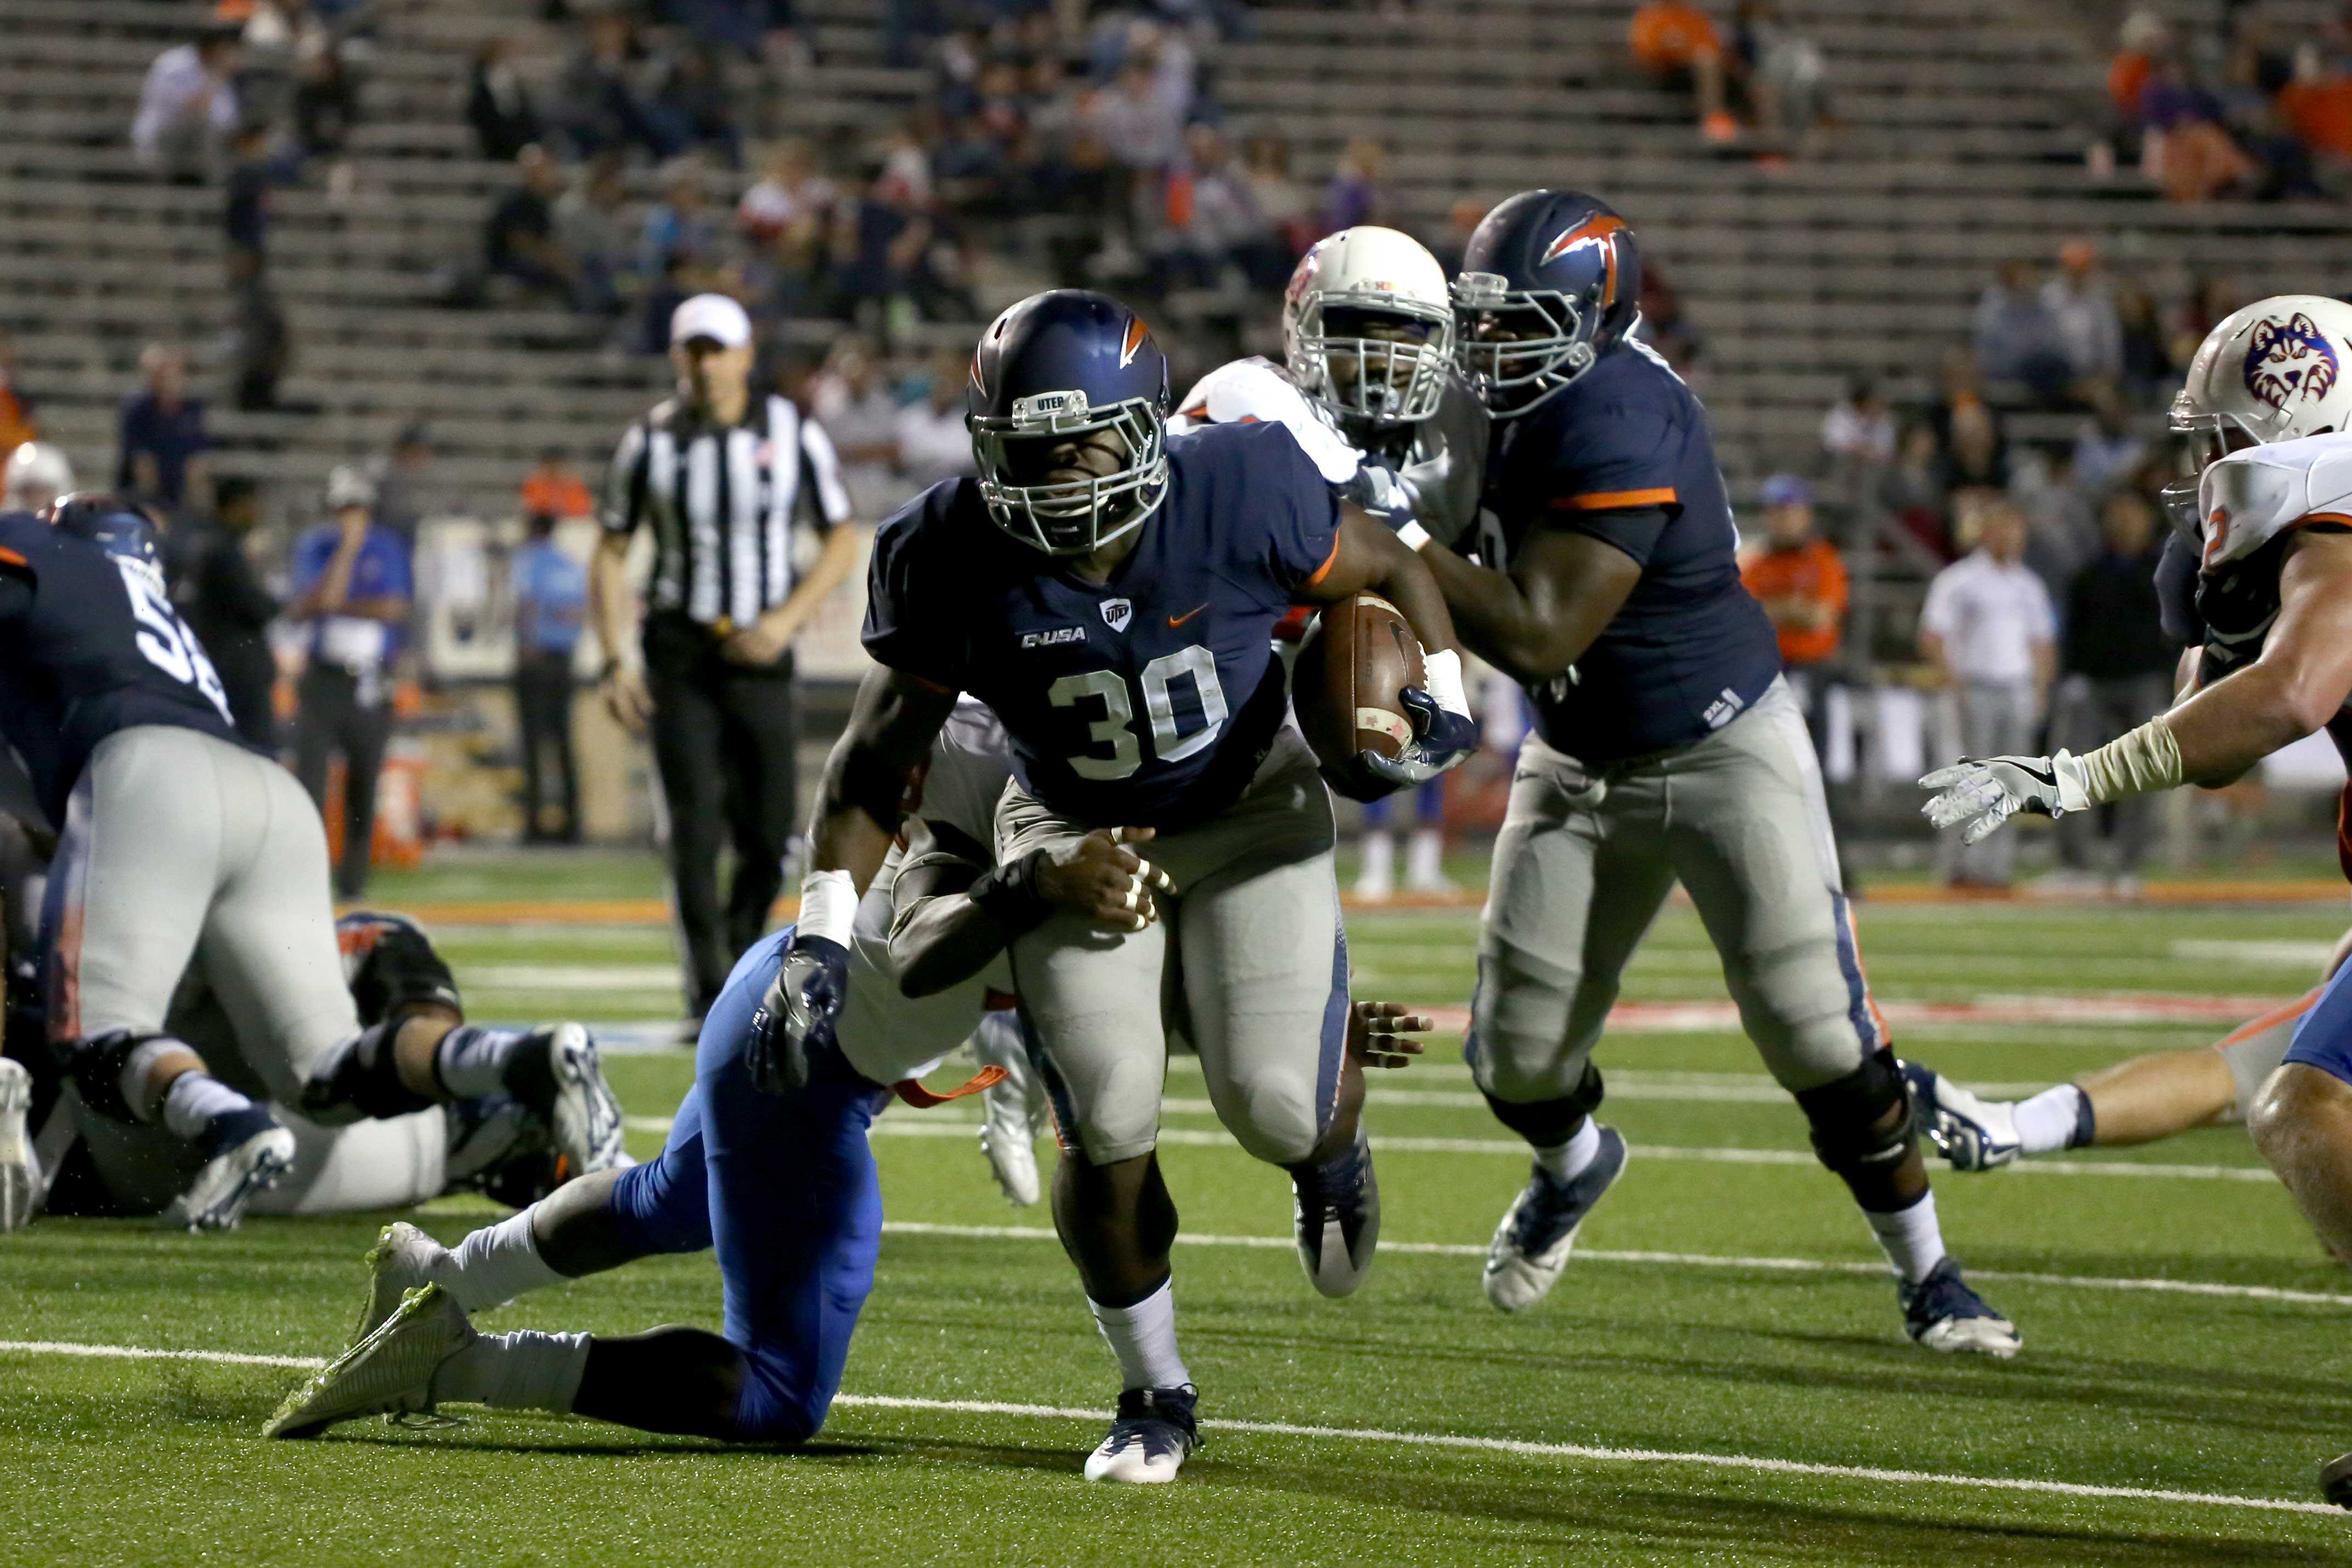 UTEP football team will travel to Boca Raton to take on Florida Atlantic in hopes of keeping their post-season hopes alive.